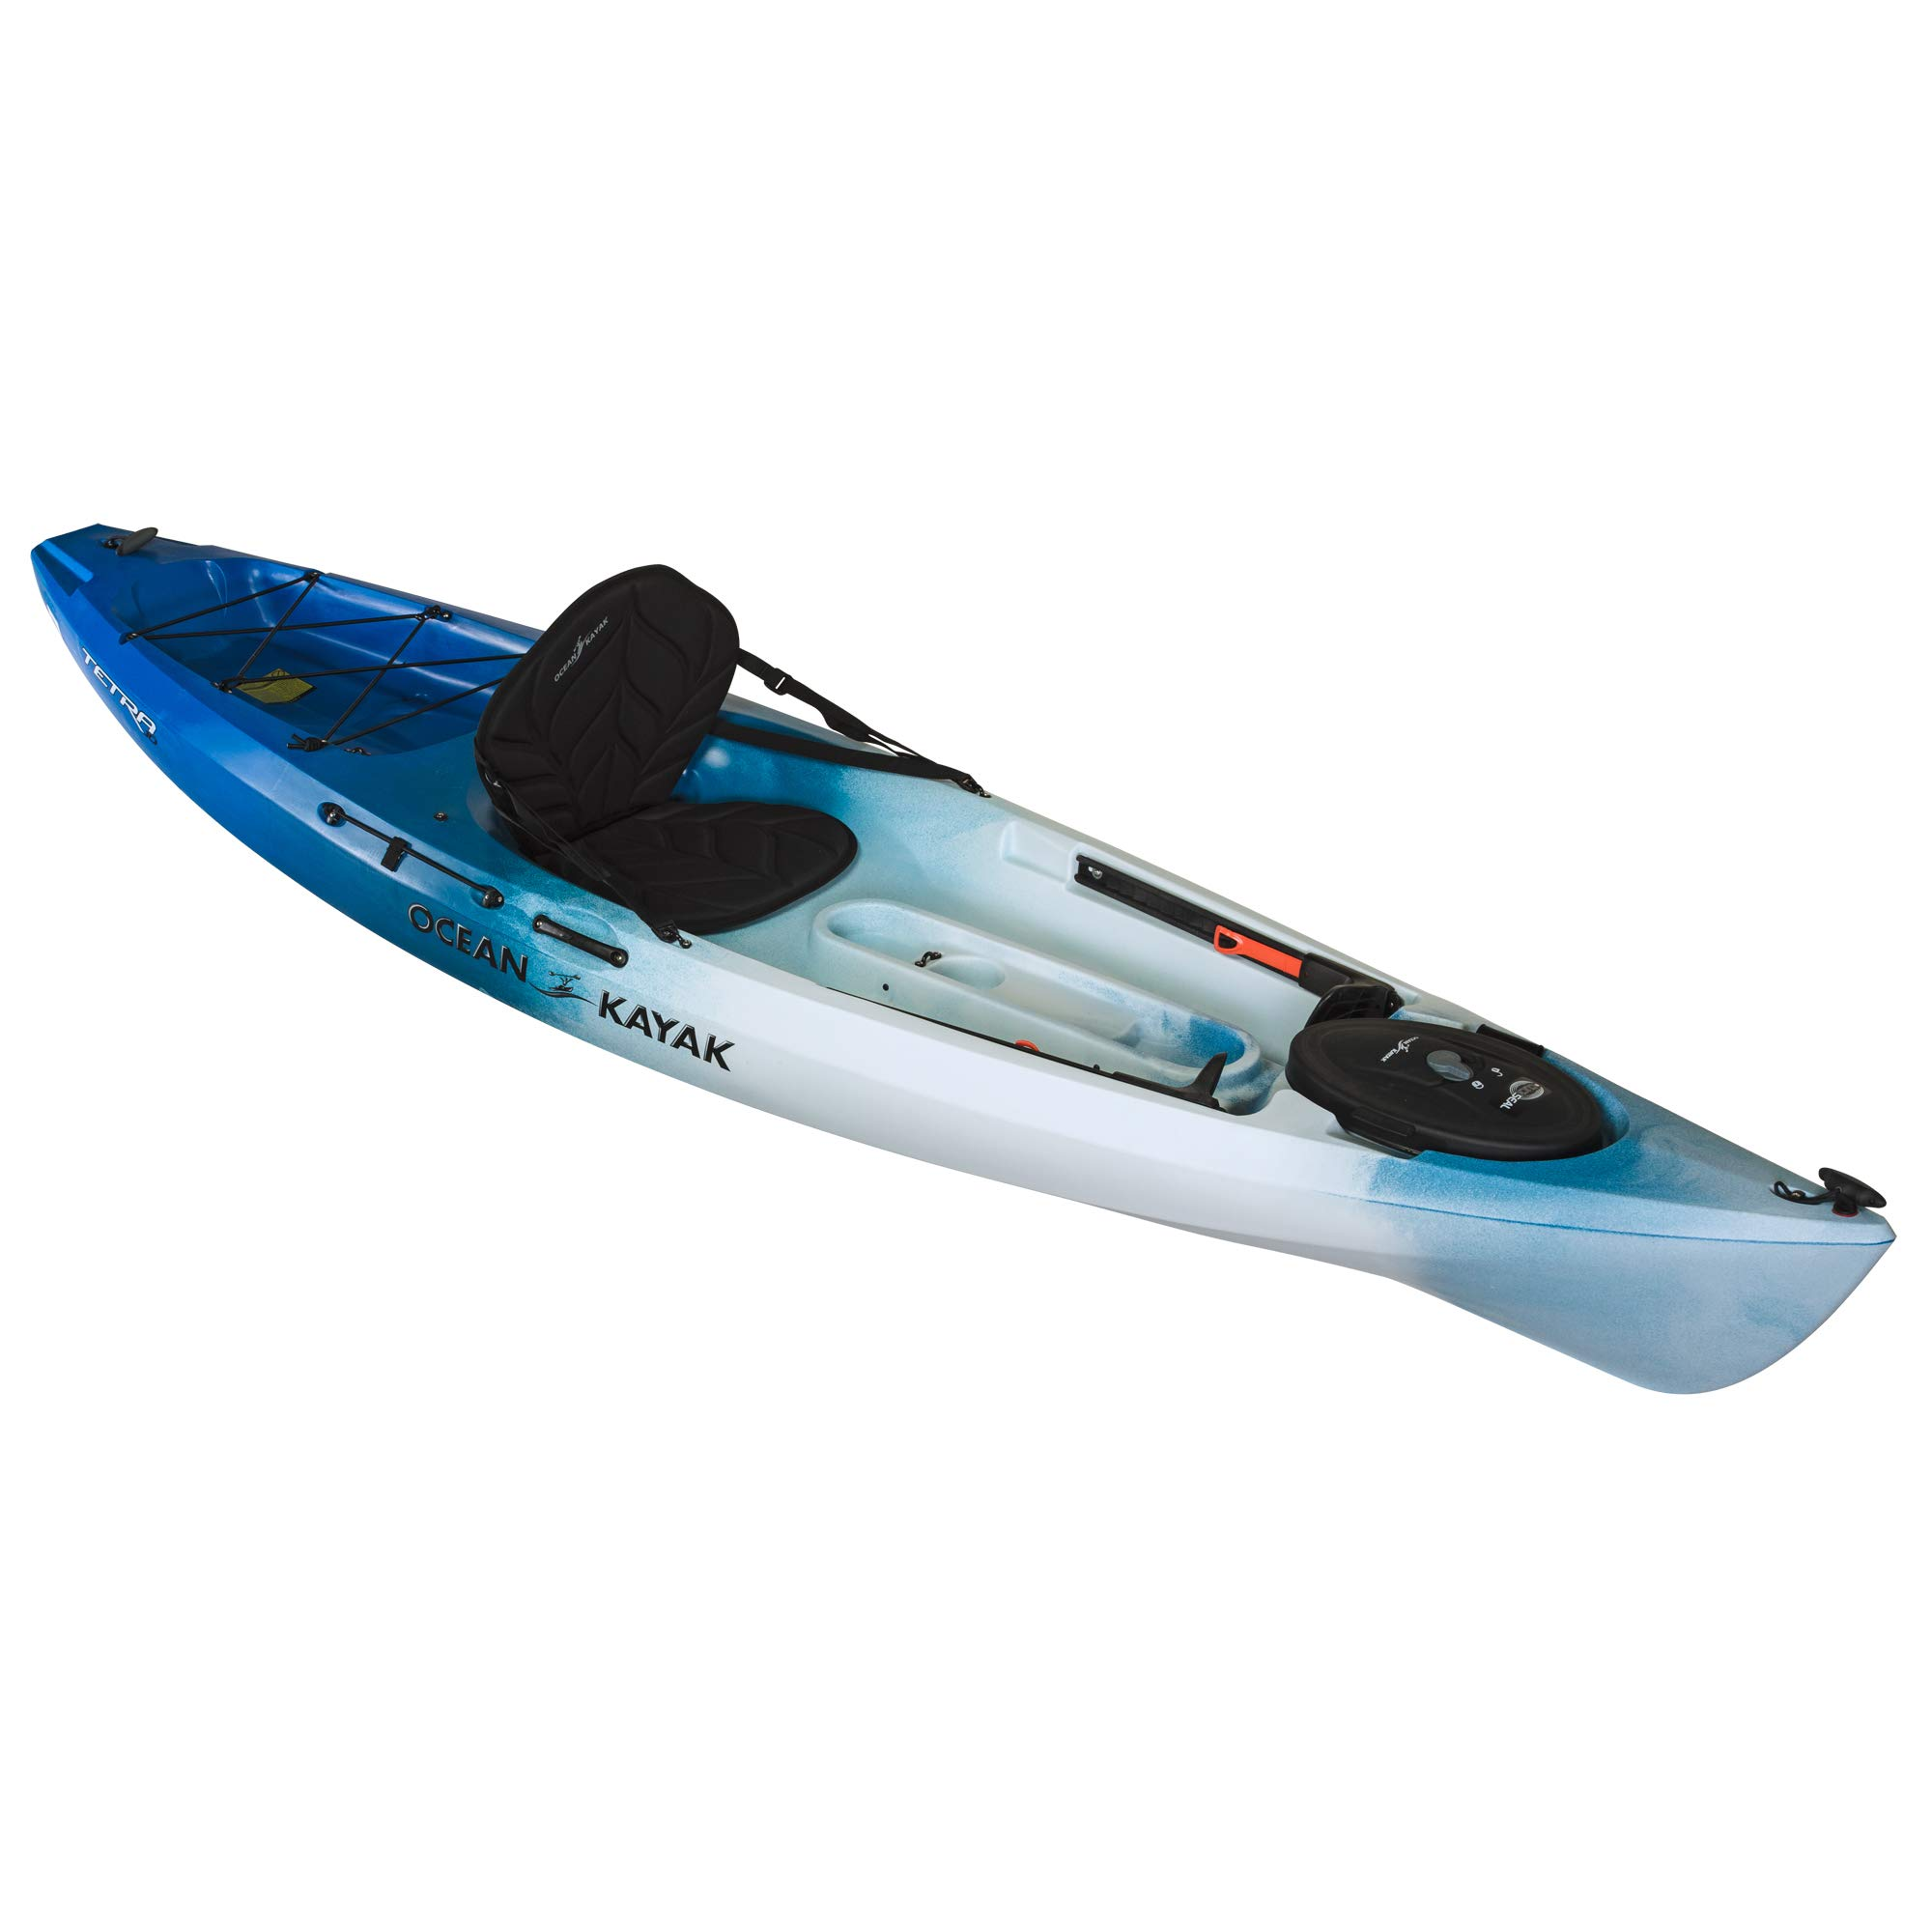 Ocean Kayak Tetra 10 One-Person Sit-On-Top Kayak, Surf, 10 Feet 8 Inches